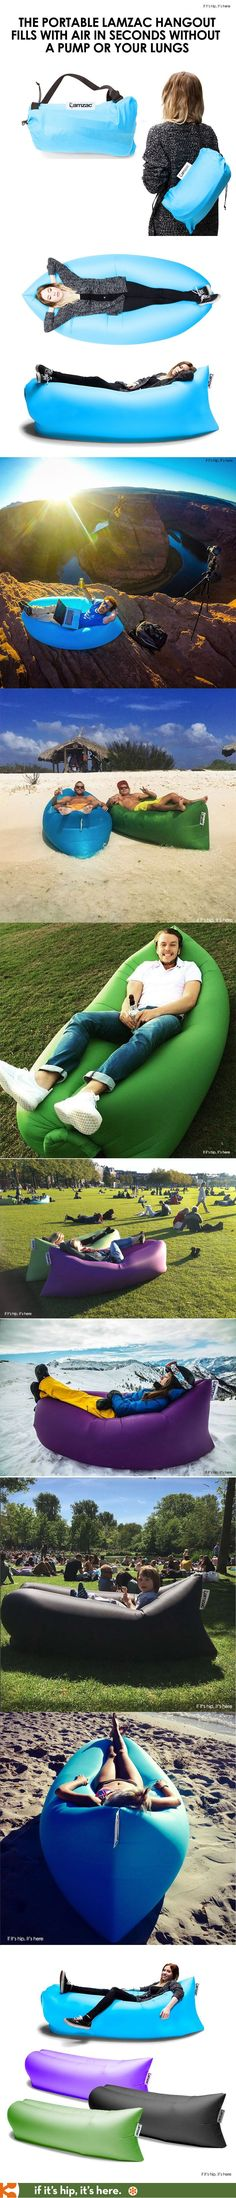 The portable Lamzac hangout, made of ripstop nylon, inflates in seconds without…